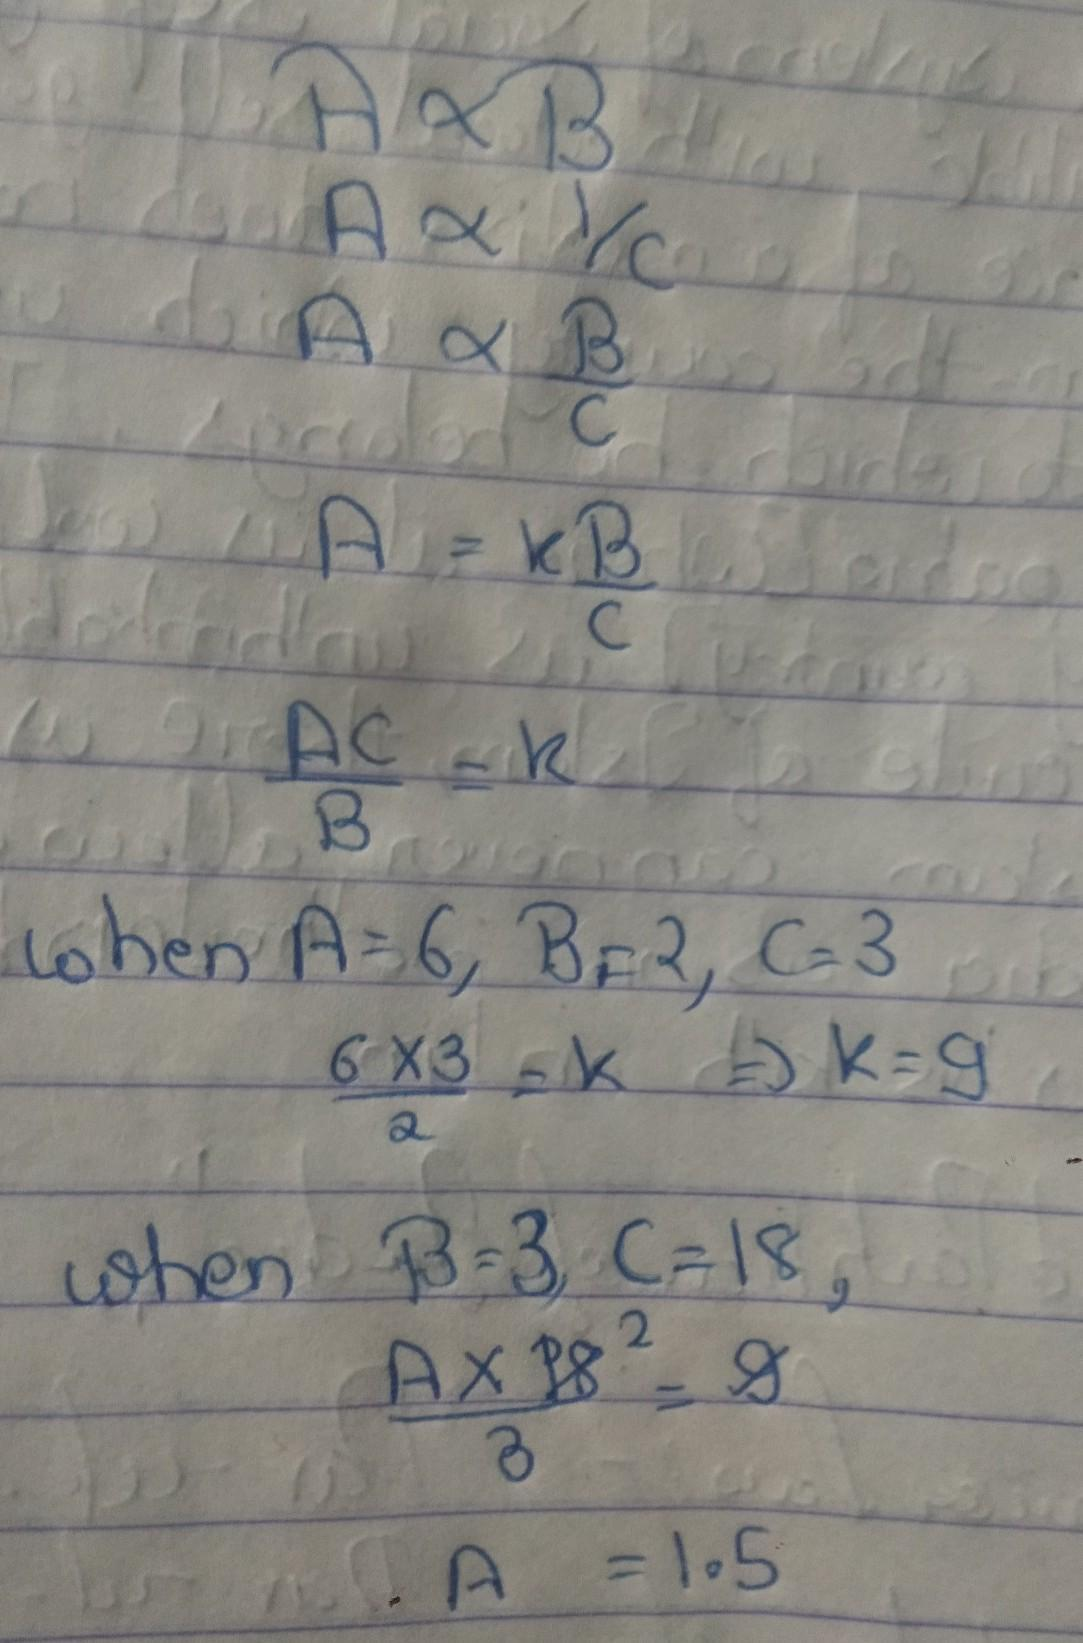 A Varies Directly With B When C Is Constant Andinversely